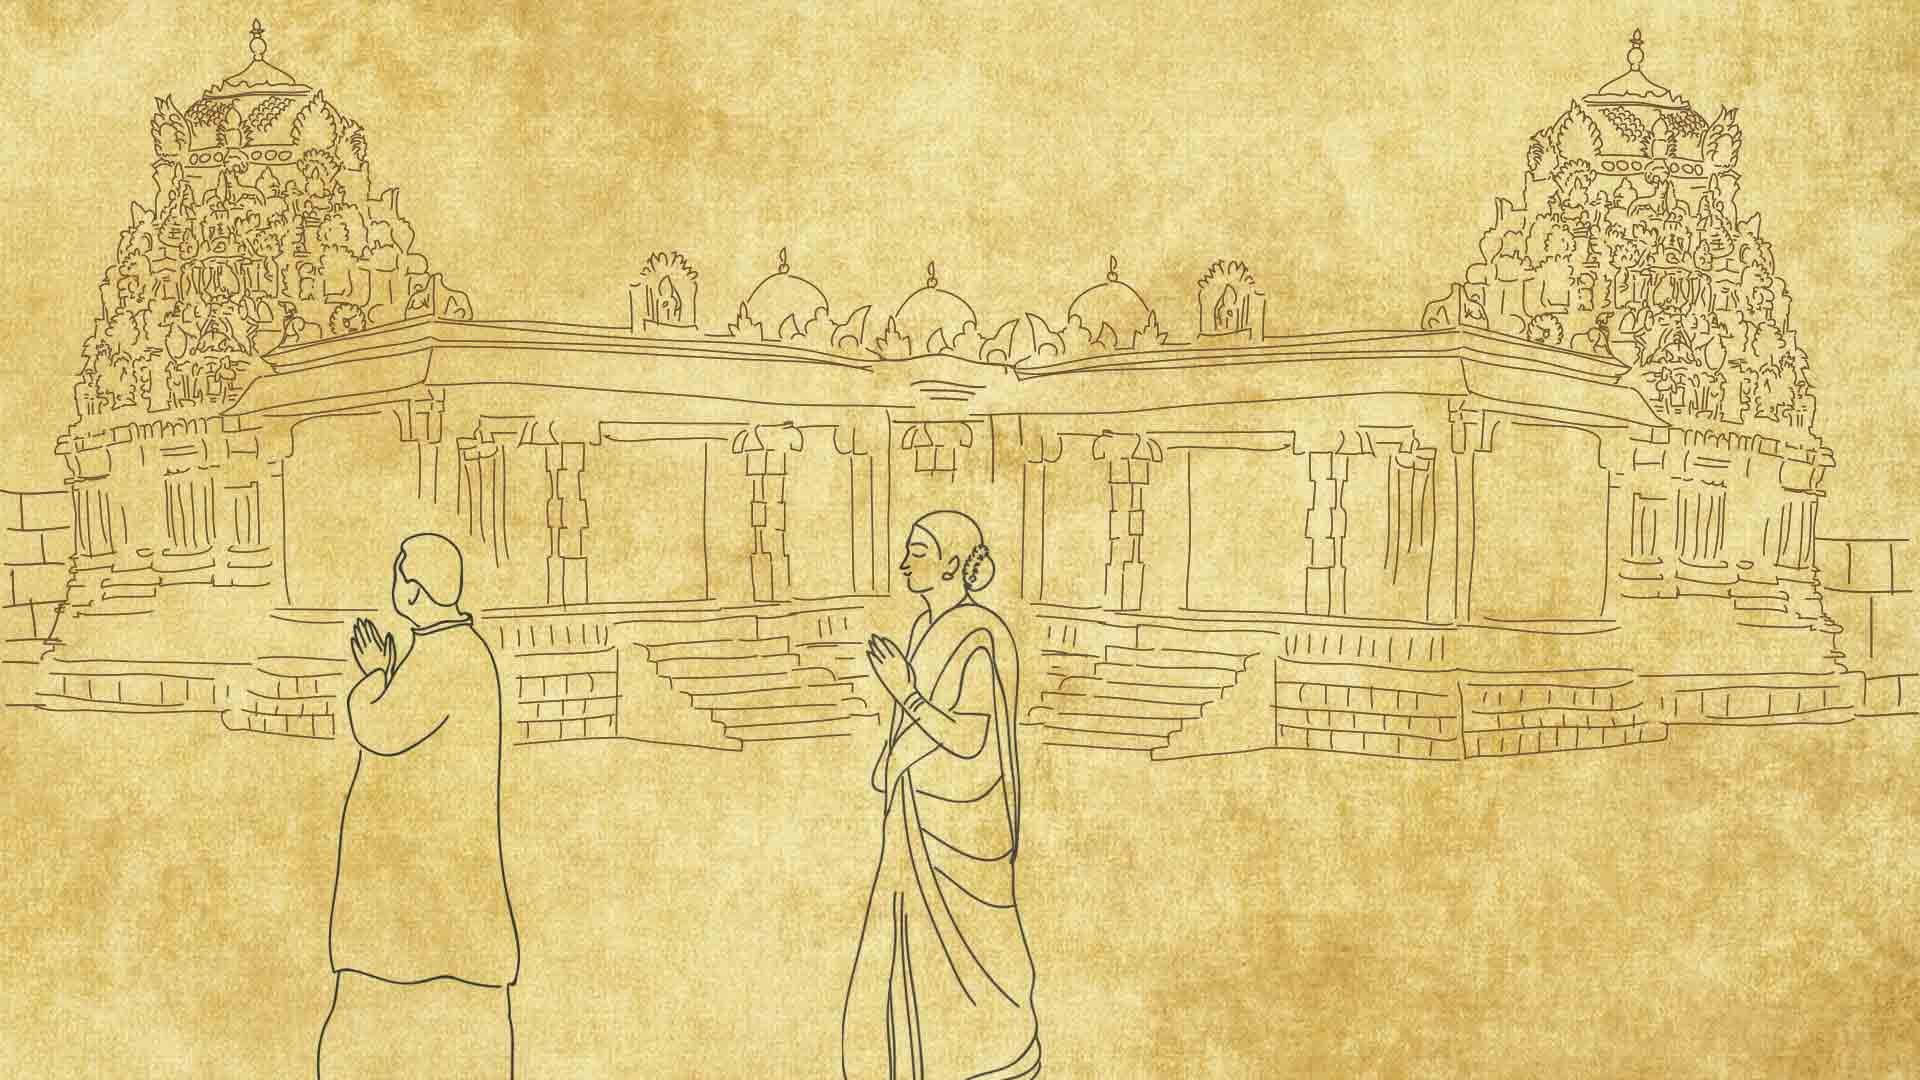 Pradakshina: Why Do We Go Clockwise Around Temples